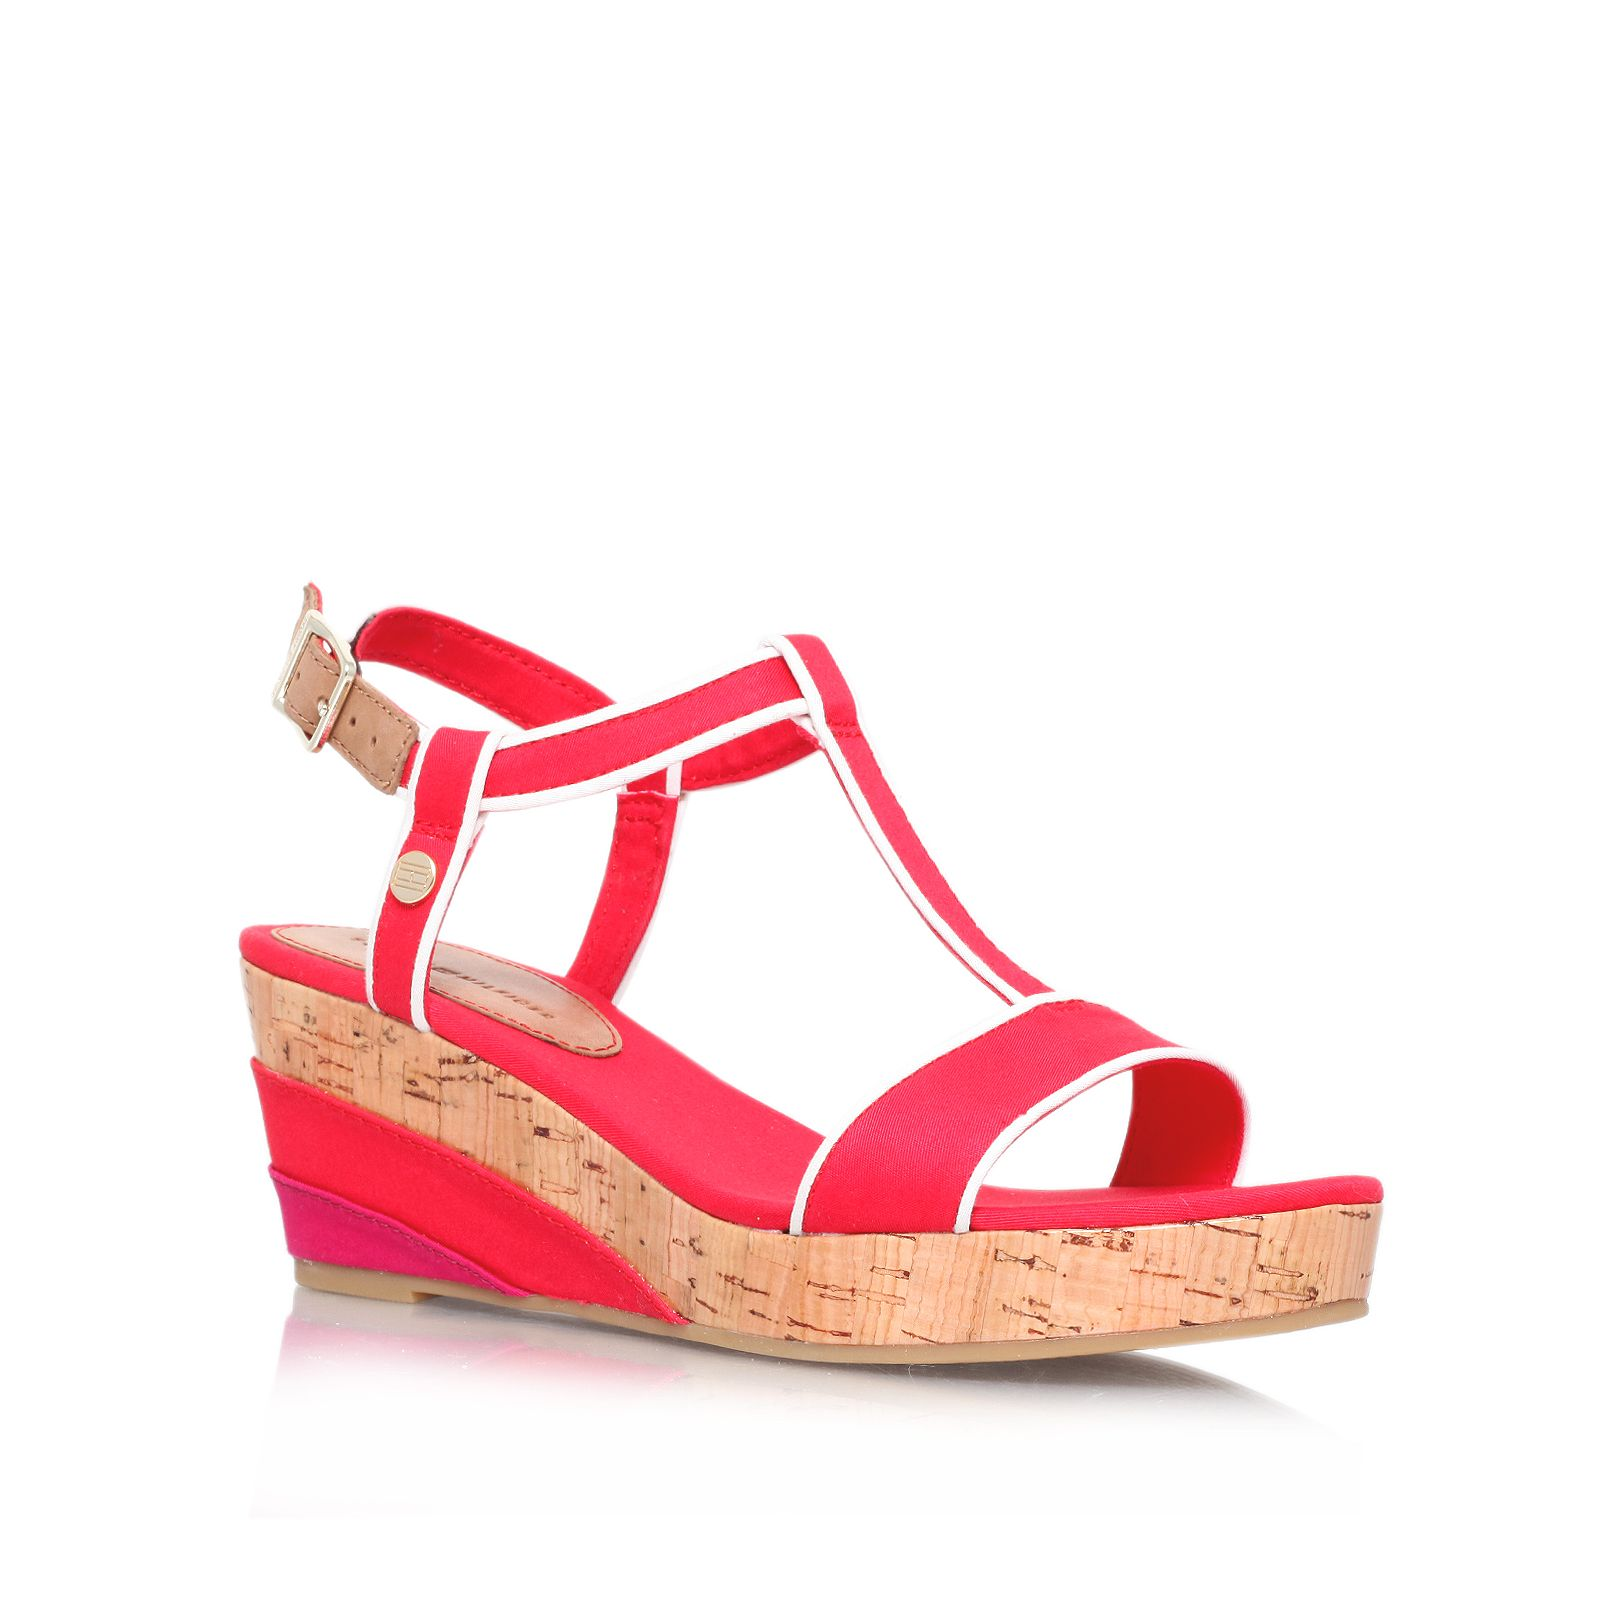 Elba3c mid heel wedges sandals